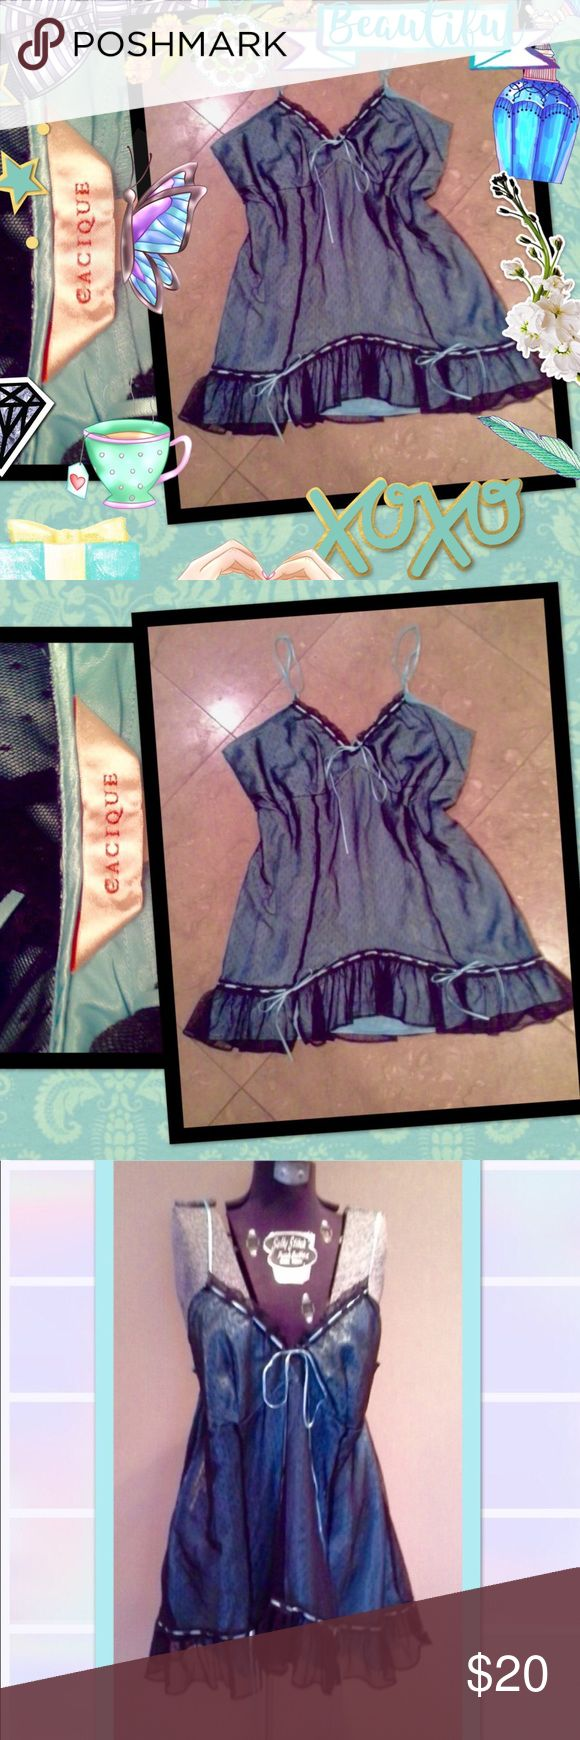 Beautifl Cacique Aqua&Blk cami/lingerie sz18/20 Beautiful Cacique black lace with aqua blue satiny camisole tunic or lingerie nighty in sz 18/20 like new! This world be pretty worn even as a top with black cardigan sweater and jeans it has sweet satin ribbon ties with bows so pretty and feminine like from a lovely French Parisian bouduaire or boutique!⚜⚜💄👠👛🌹🌹🎀💙💘⚜⚜ Cacique Intimates & Sleepwear Chemises & Slips